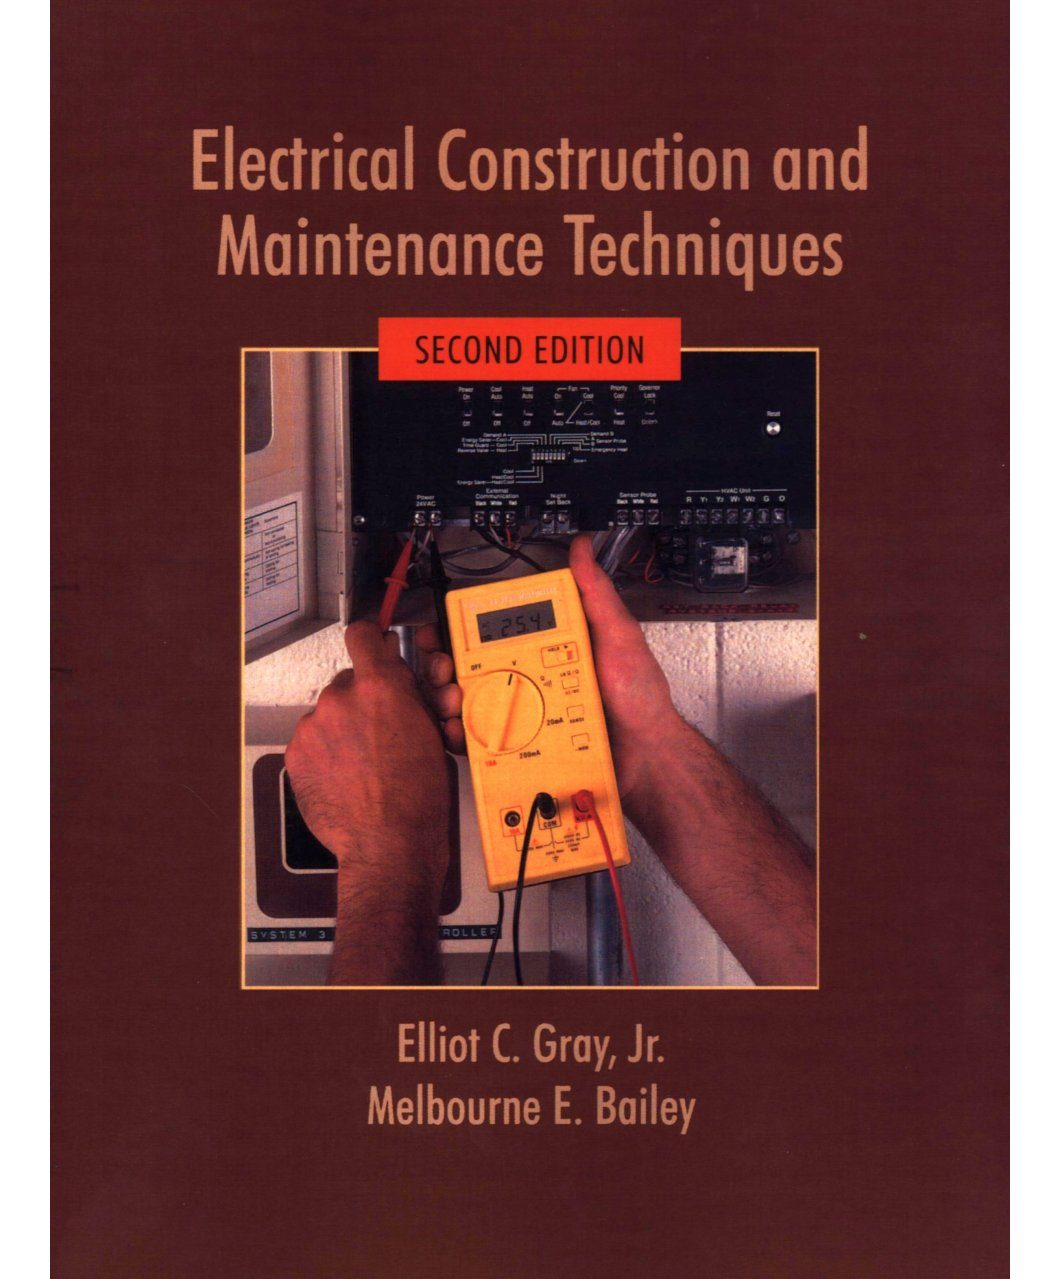 Electrical Construction and Maintenance Techniques